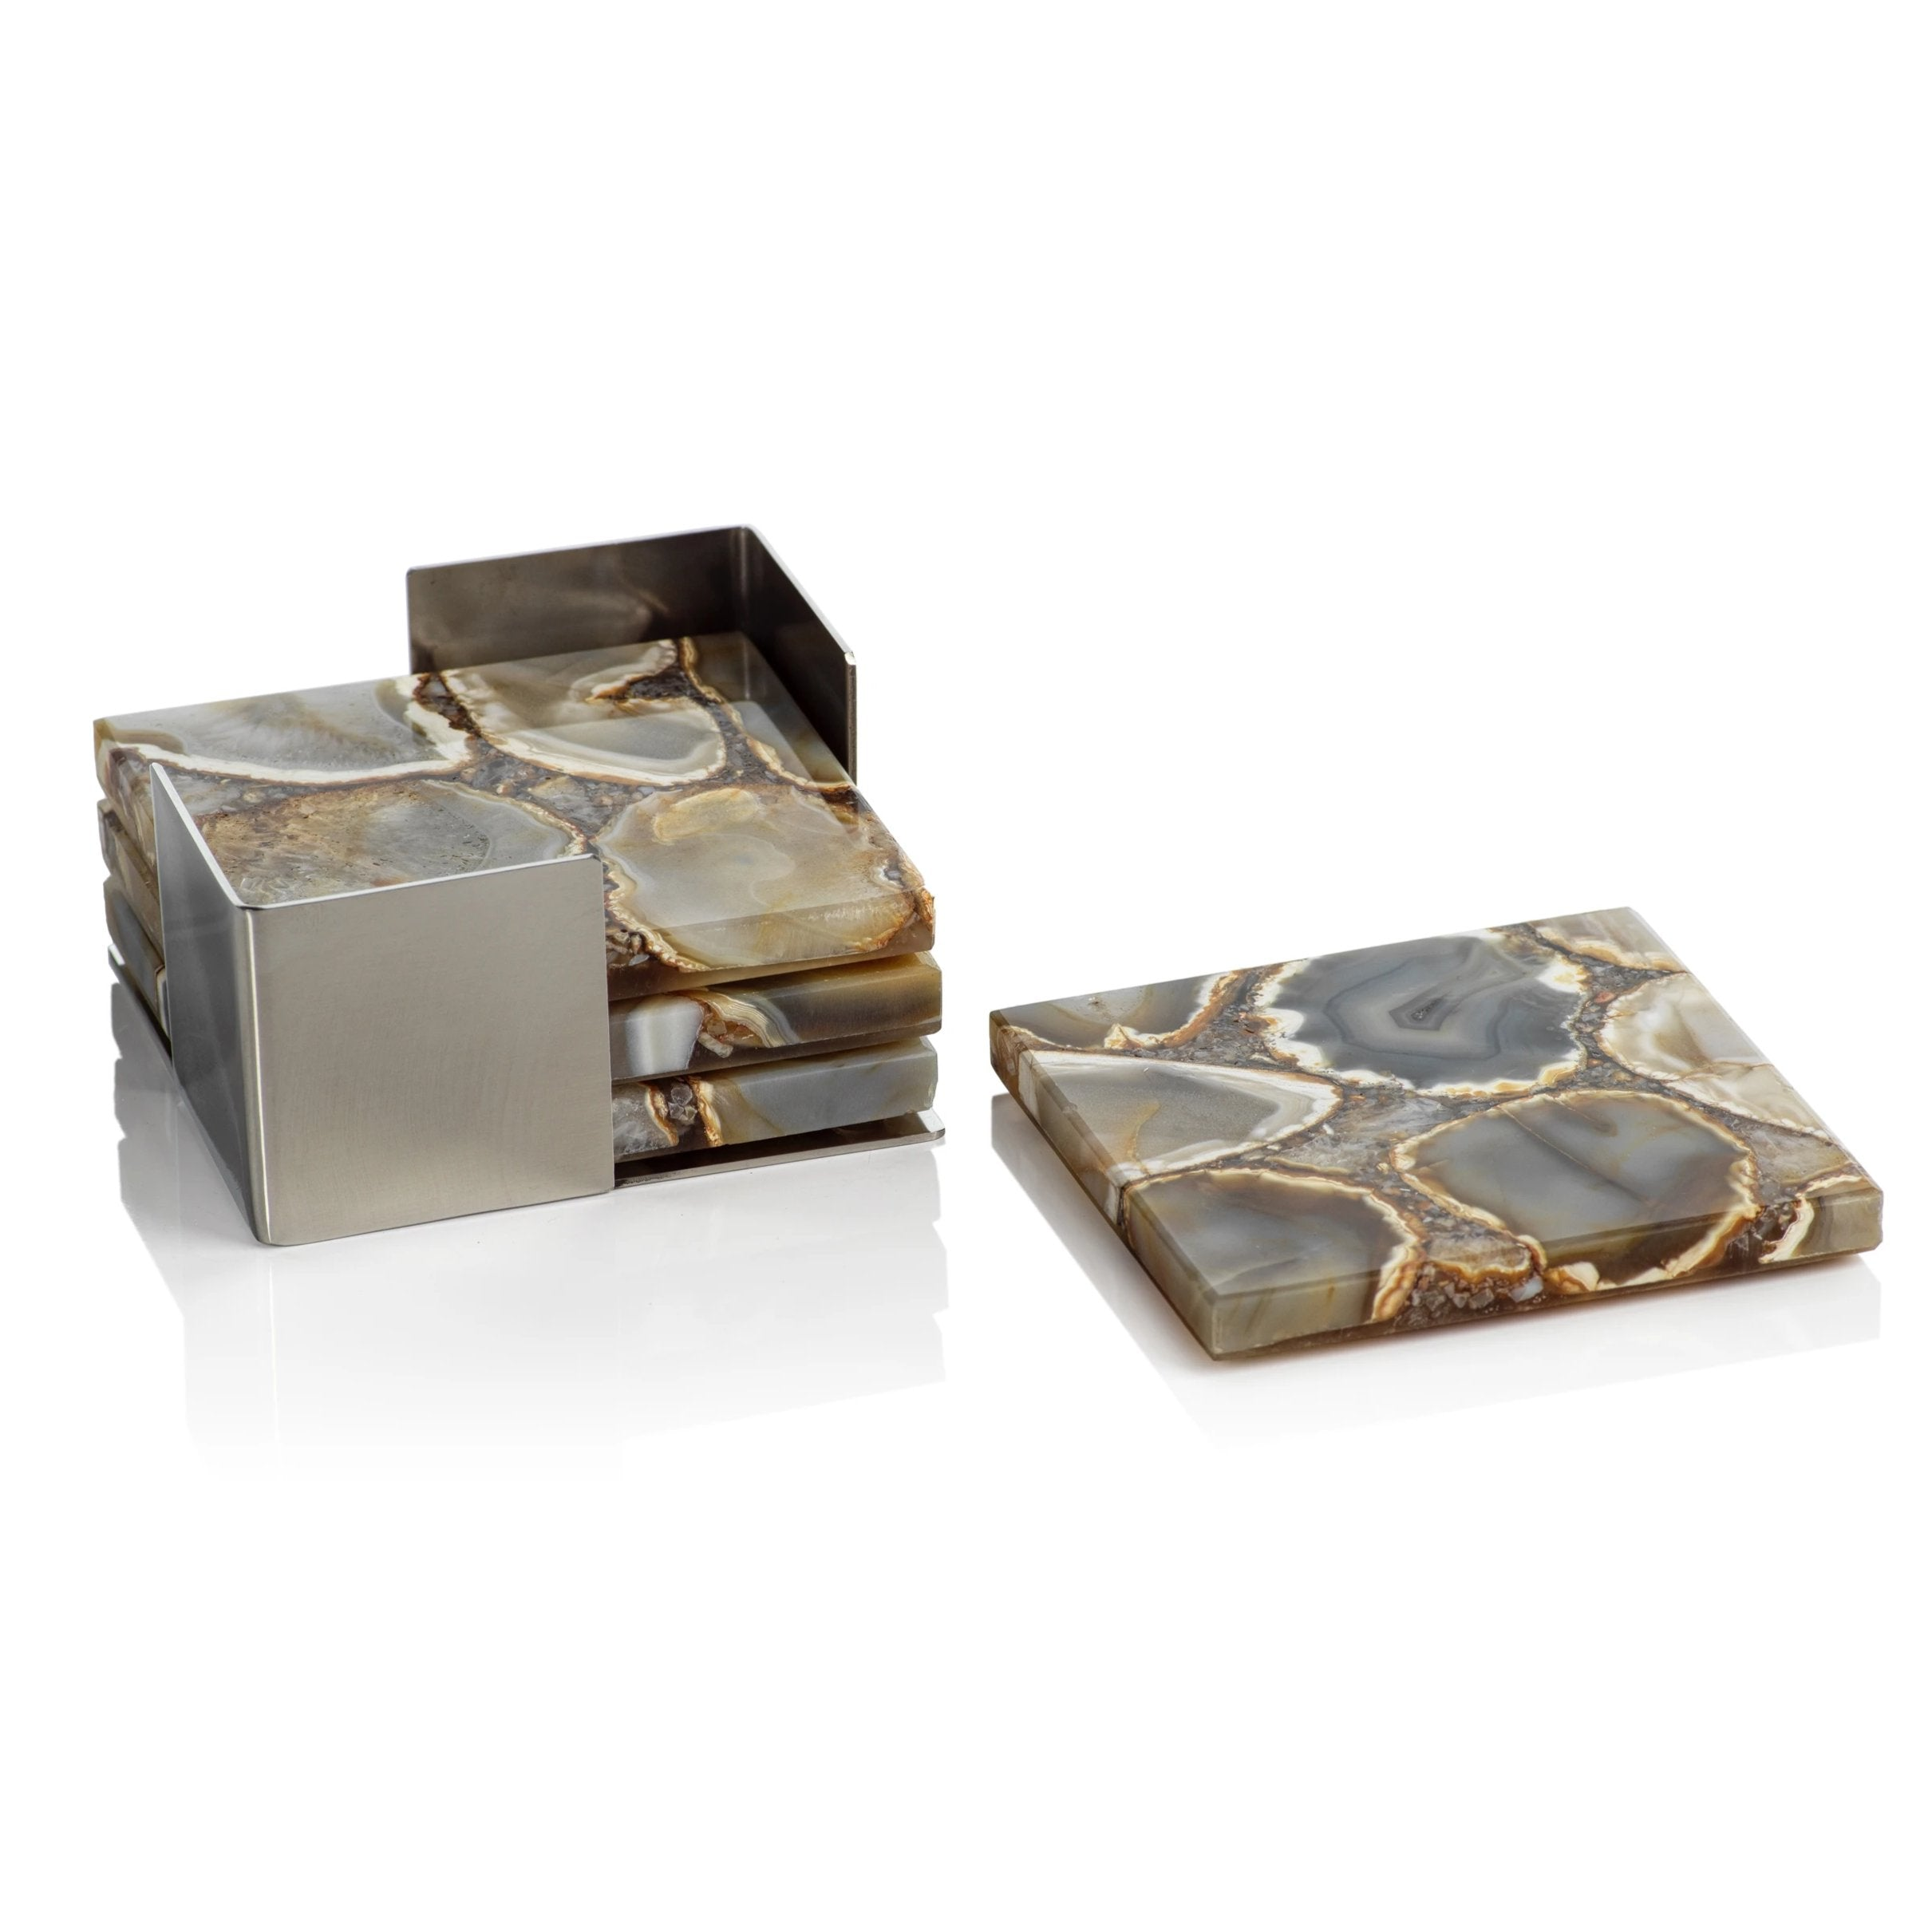 Set/4 Crete Agate Coasters on Metal Tray - Taupe/Brown - CARLYLE AVENUE